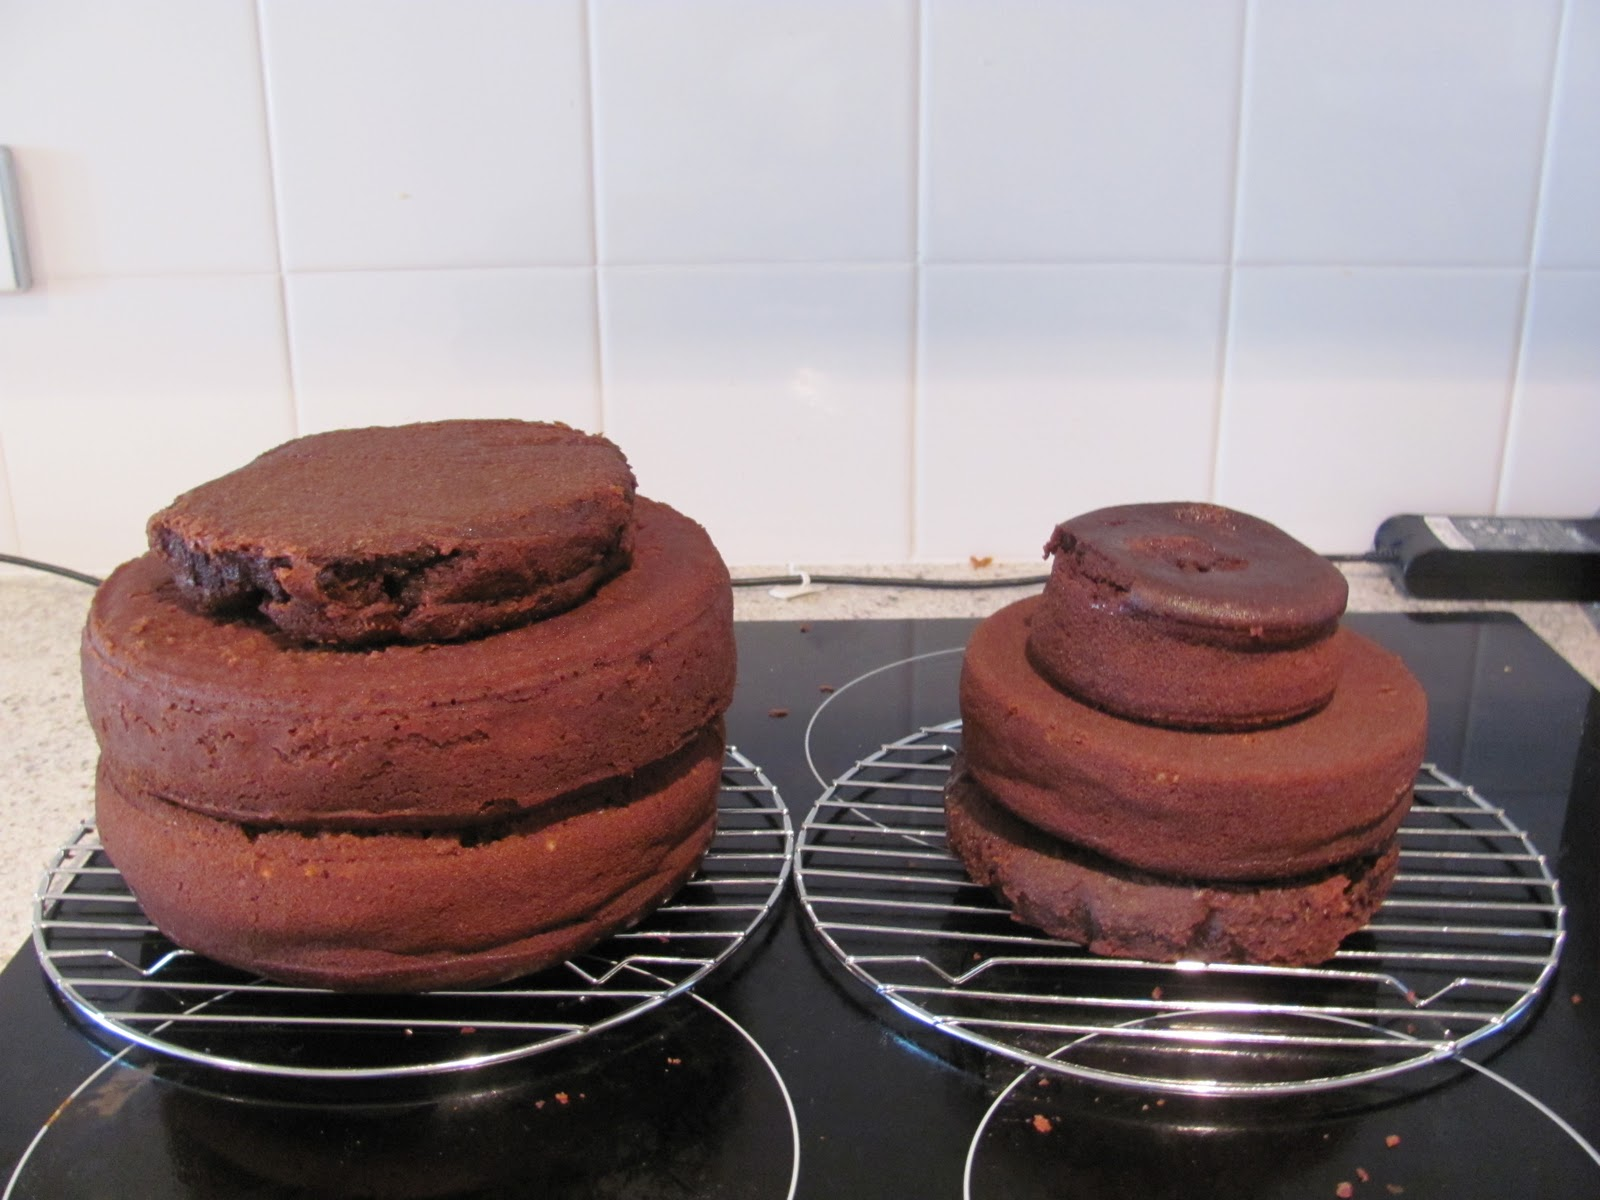 Making 2 tier cakes